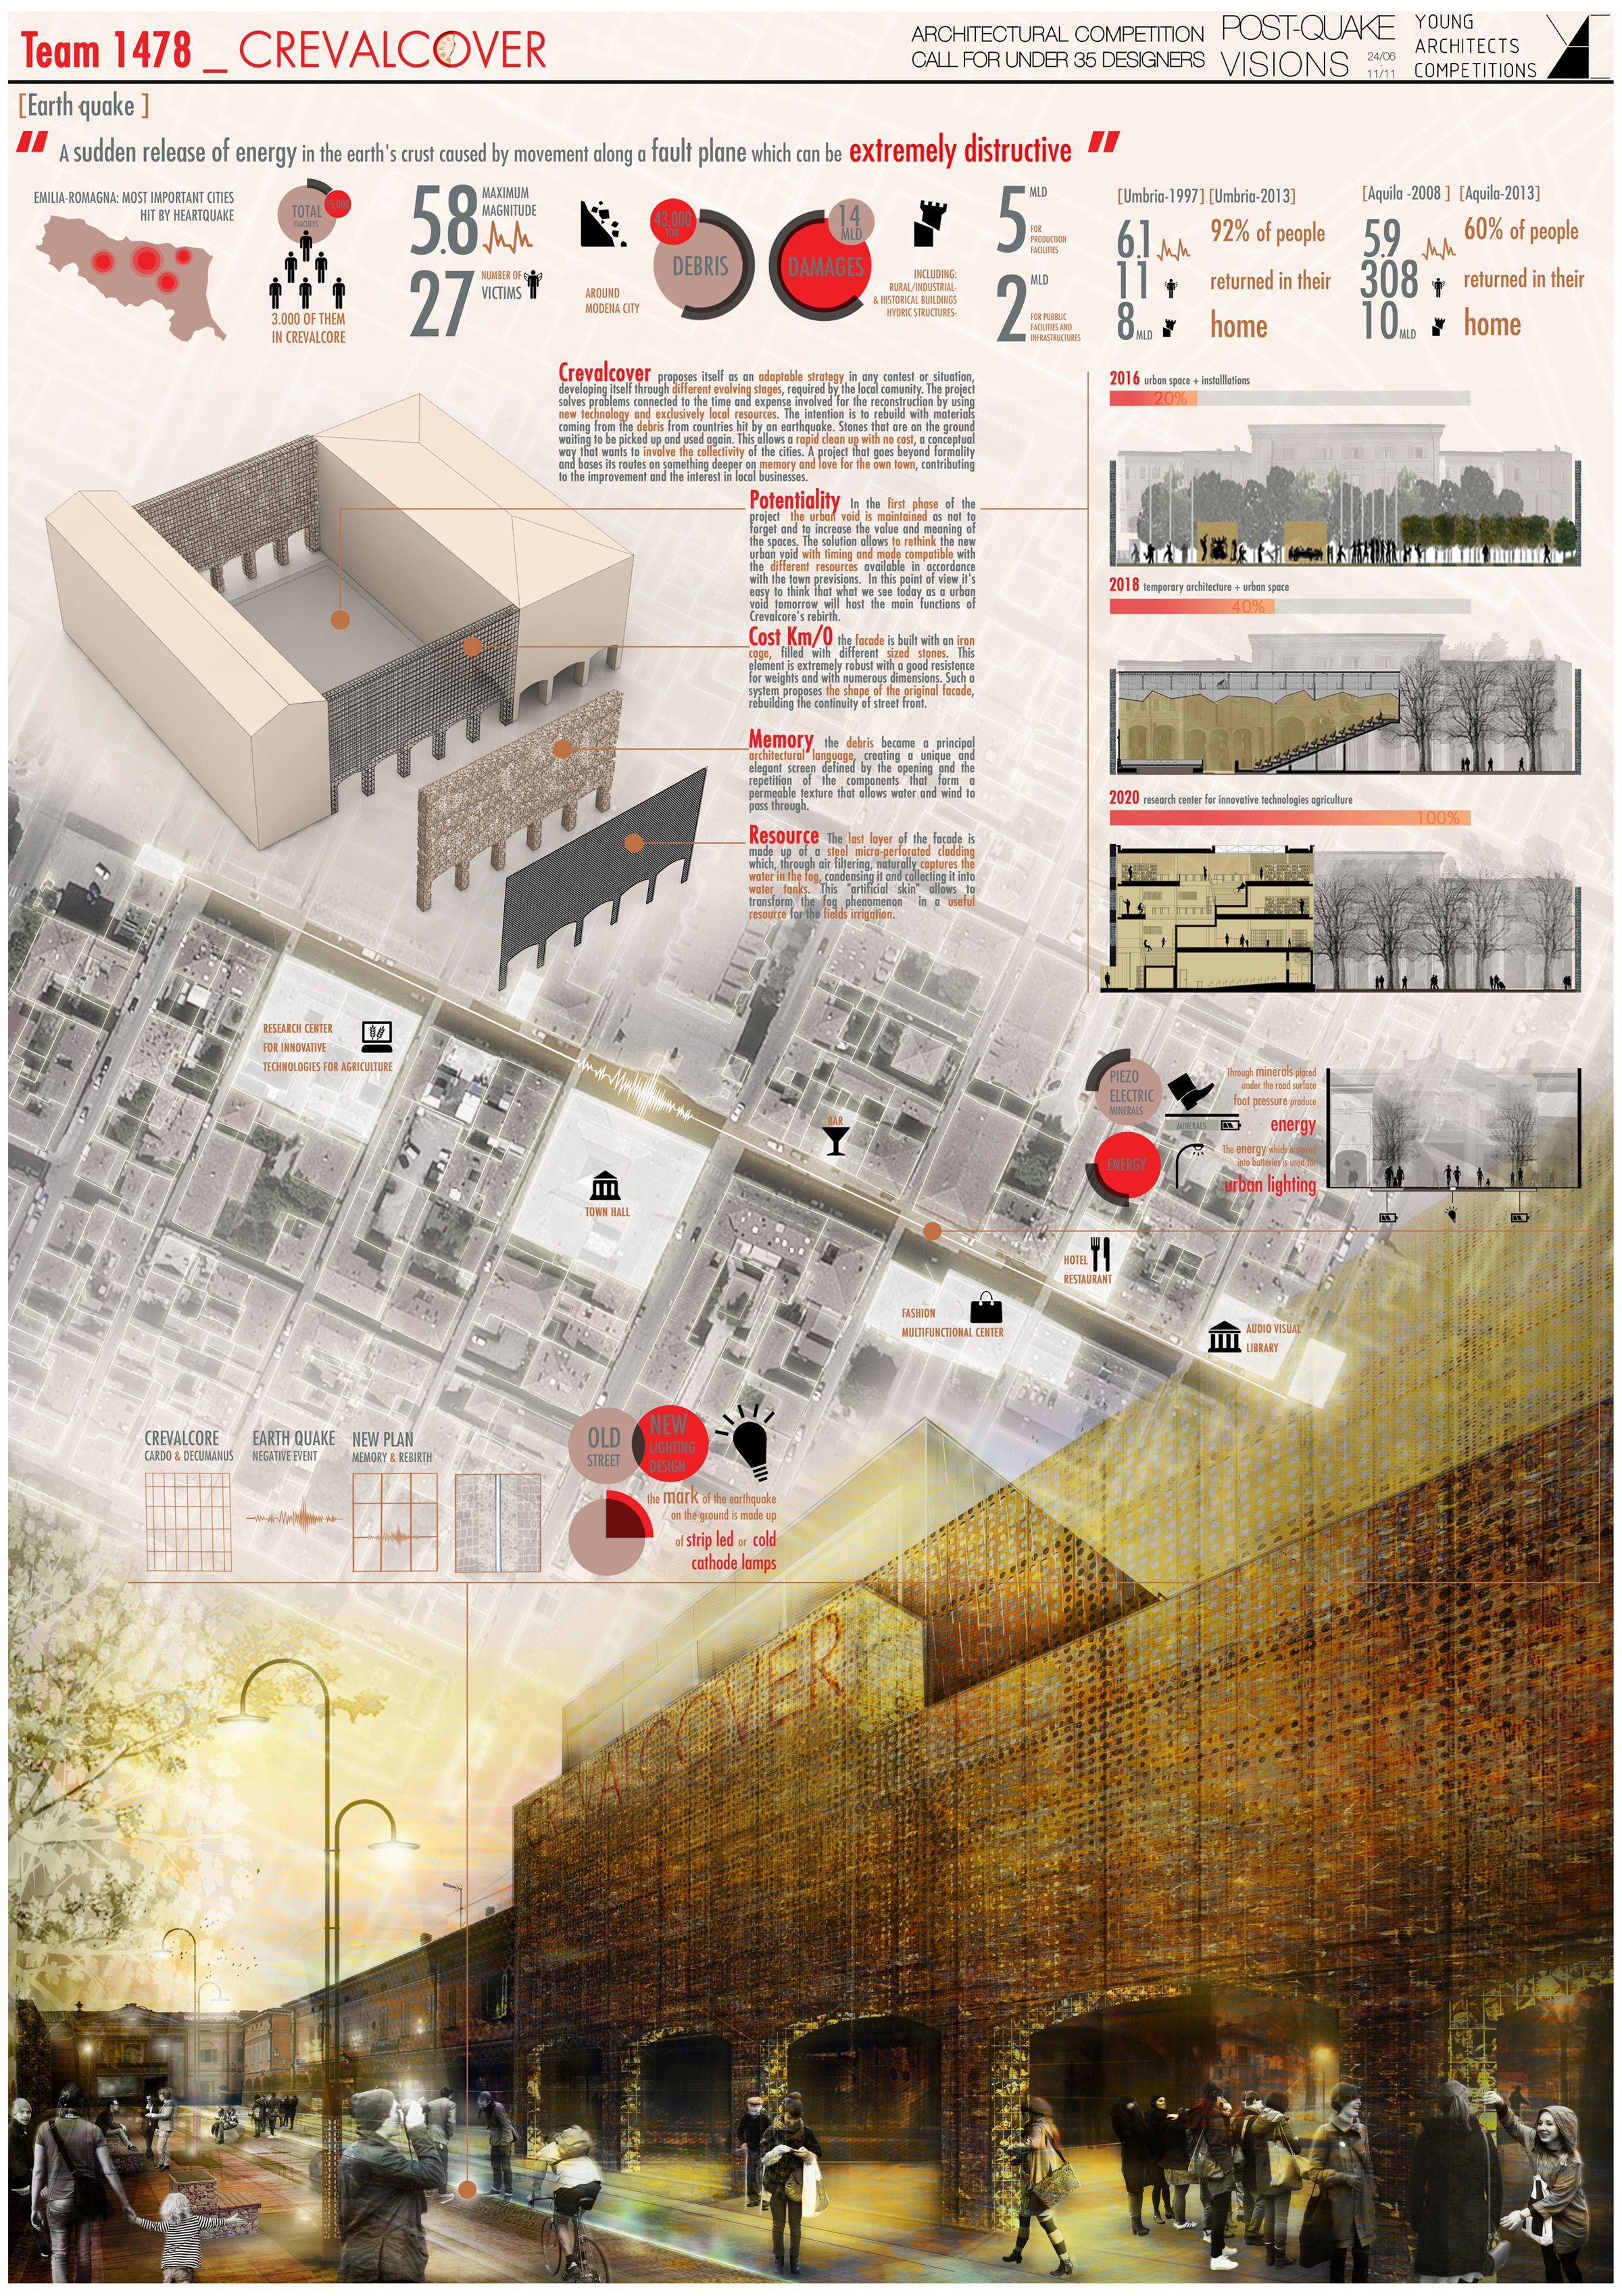 winners of the yac  u2013 post quake visions competition